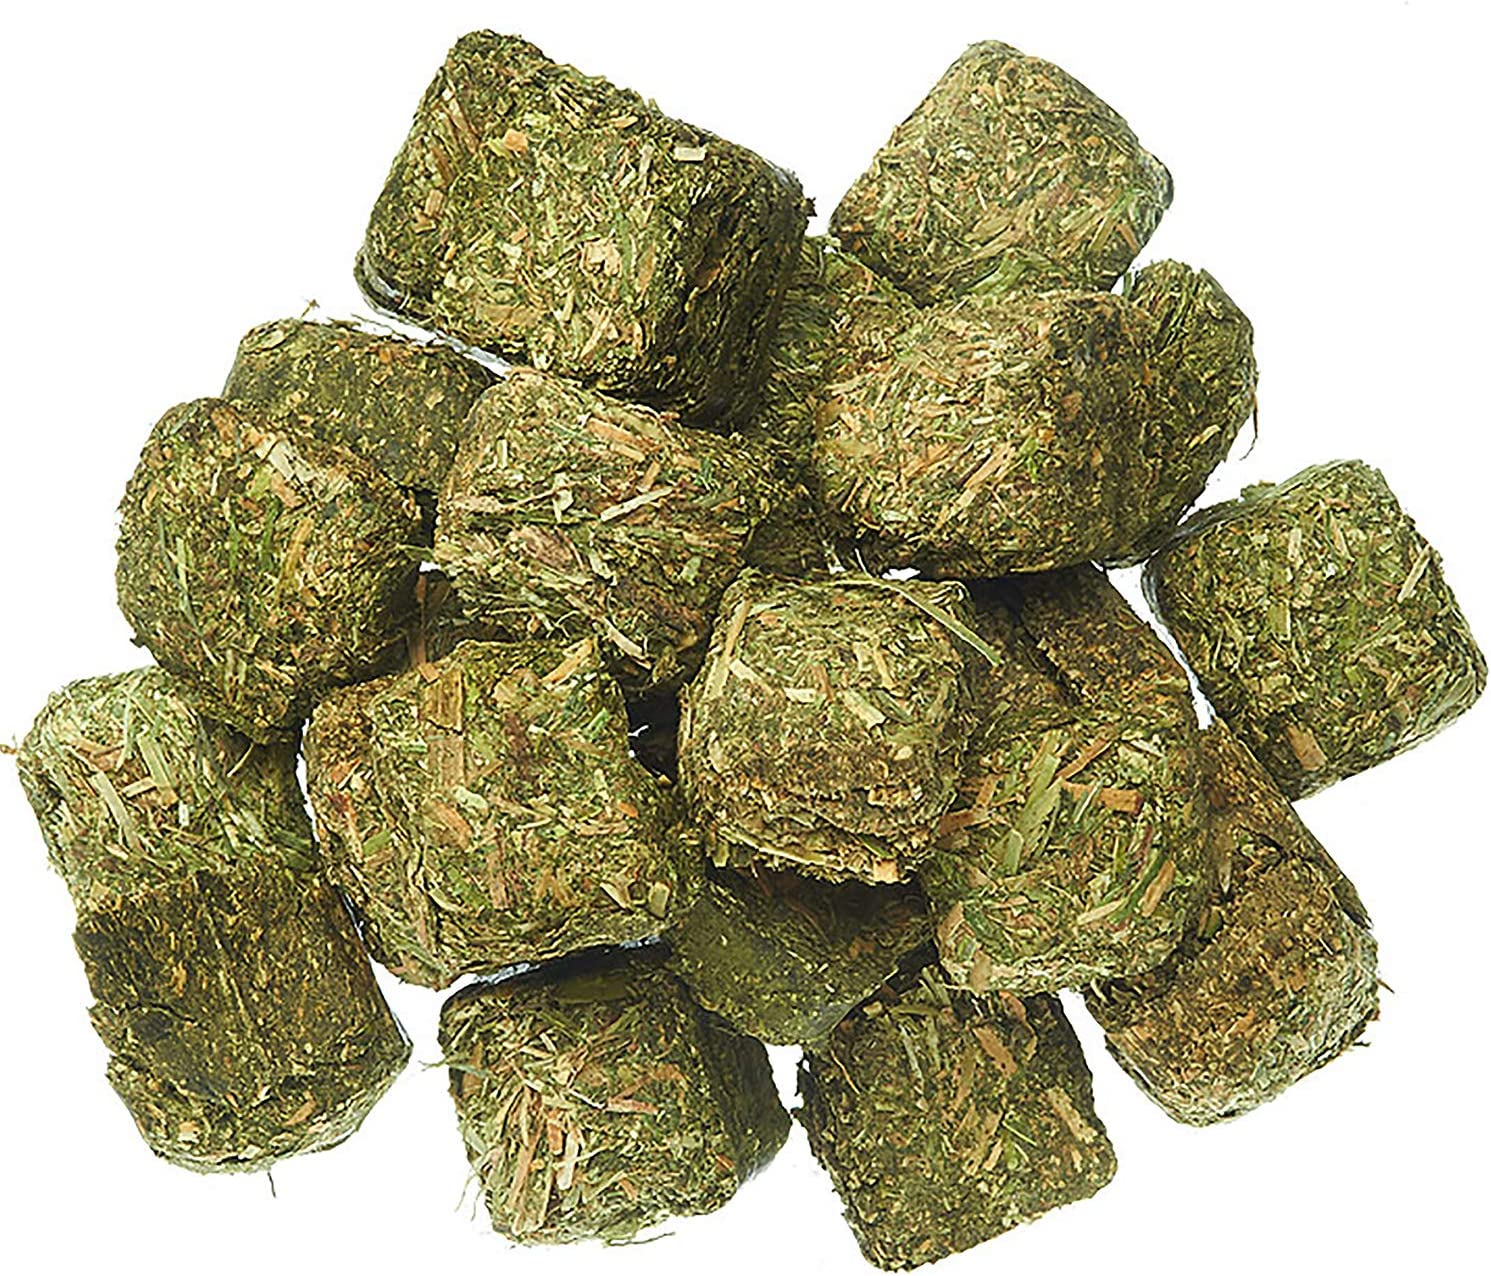 Timothy Hay Cubes 3 lb - 100% All Natural, High Fiber, Sun Cured Timothy Grass Food & Treat - Rabbits, Guinea Pigs, Chinchillas, Degus, Prairie Dogs, Tortoises, Hamsters, Gerbils, Rats & Small Pets